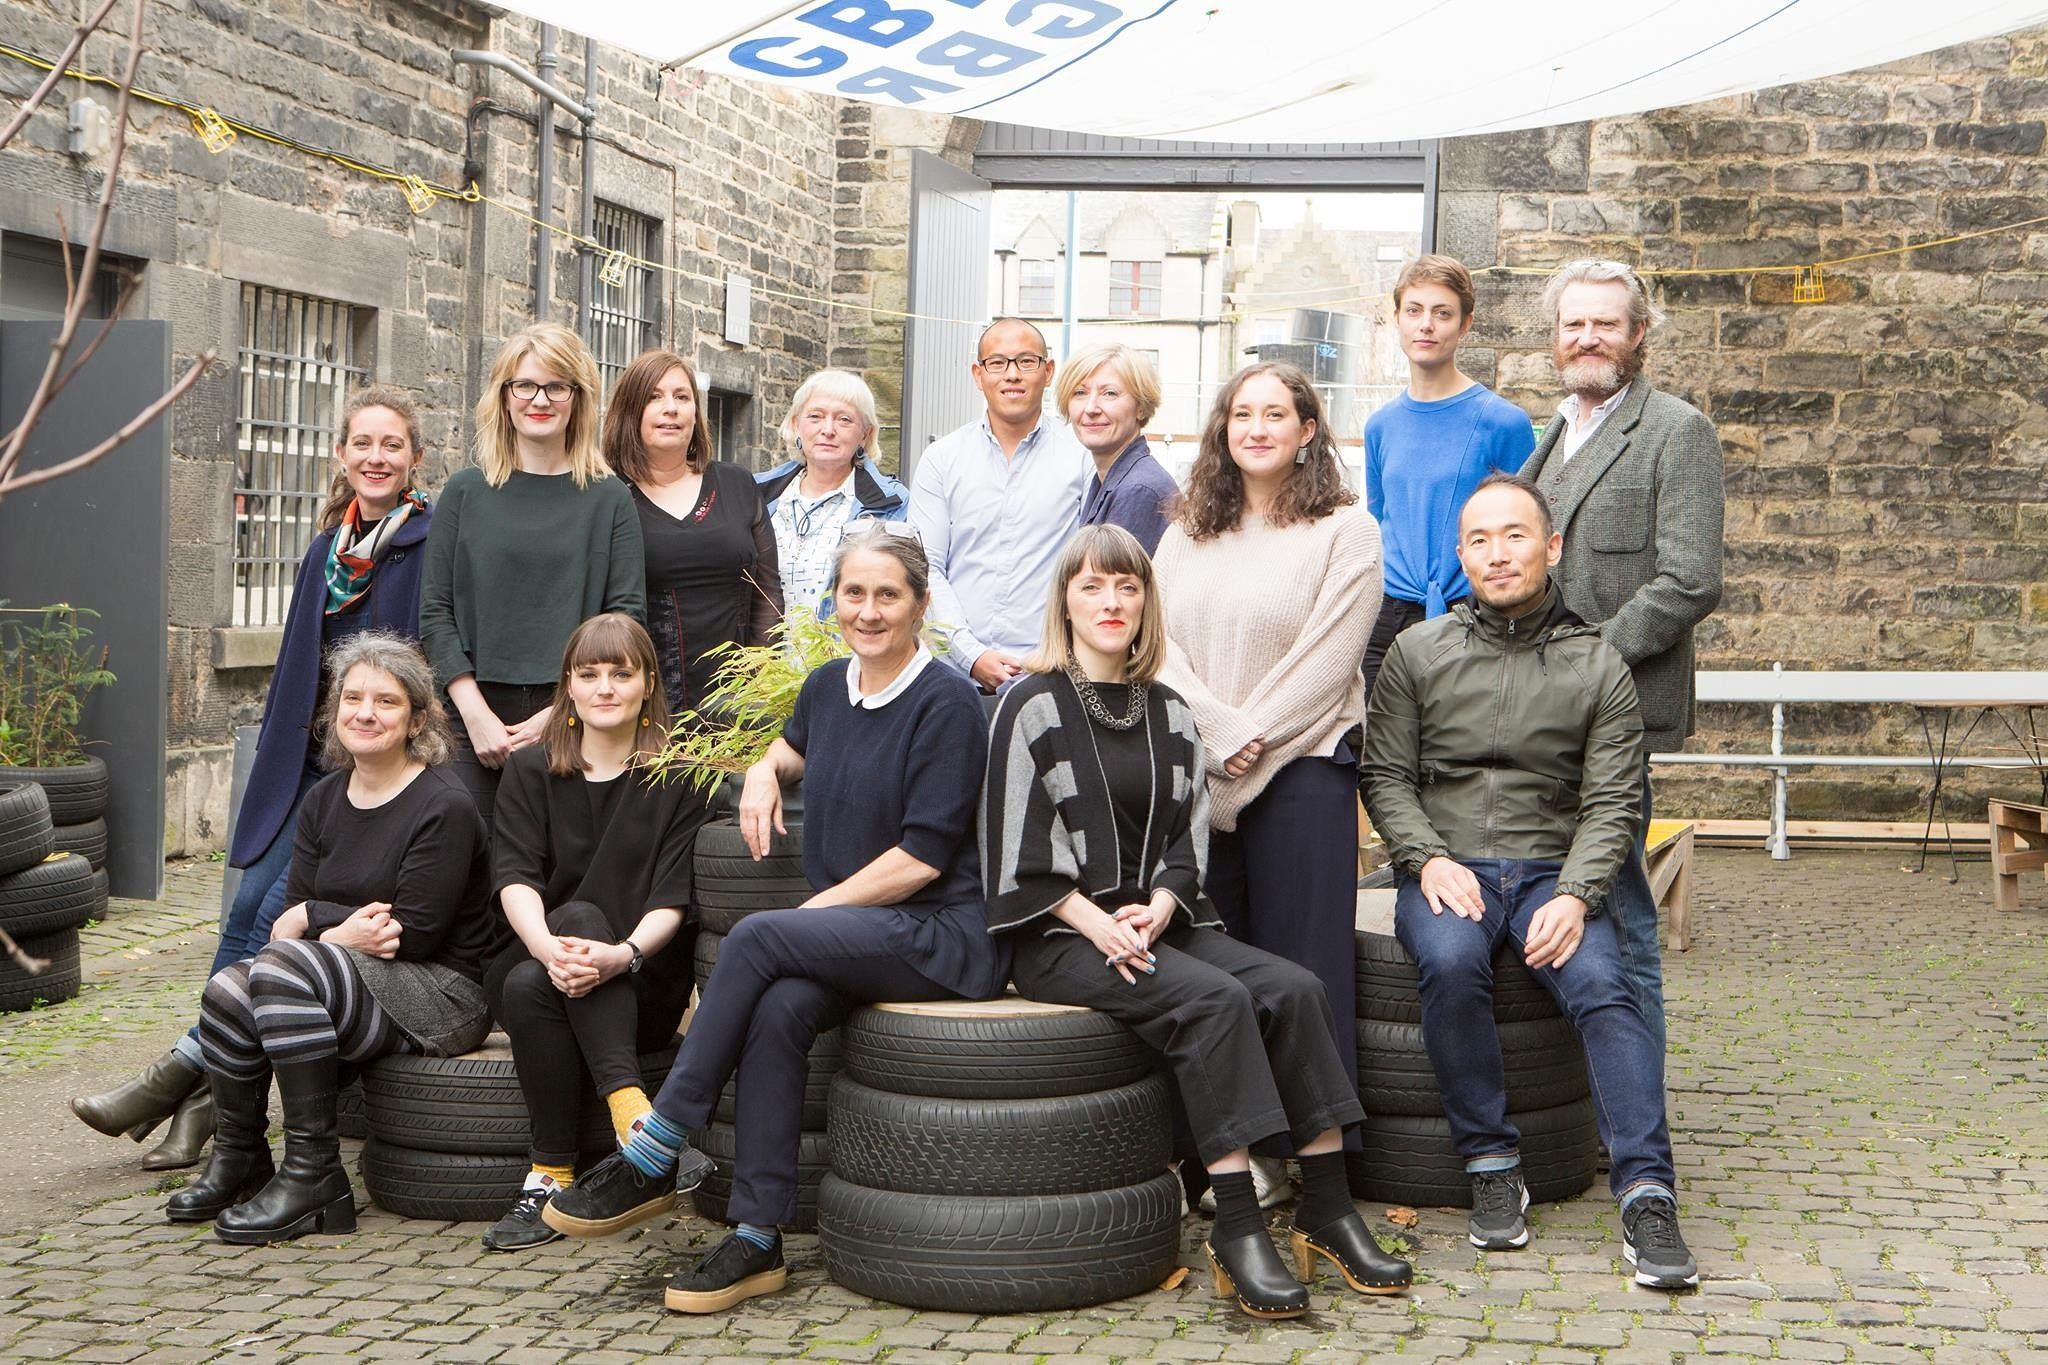 The makers represented by Craft Scotland at Collect